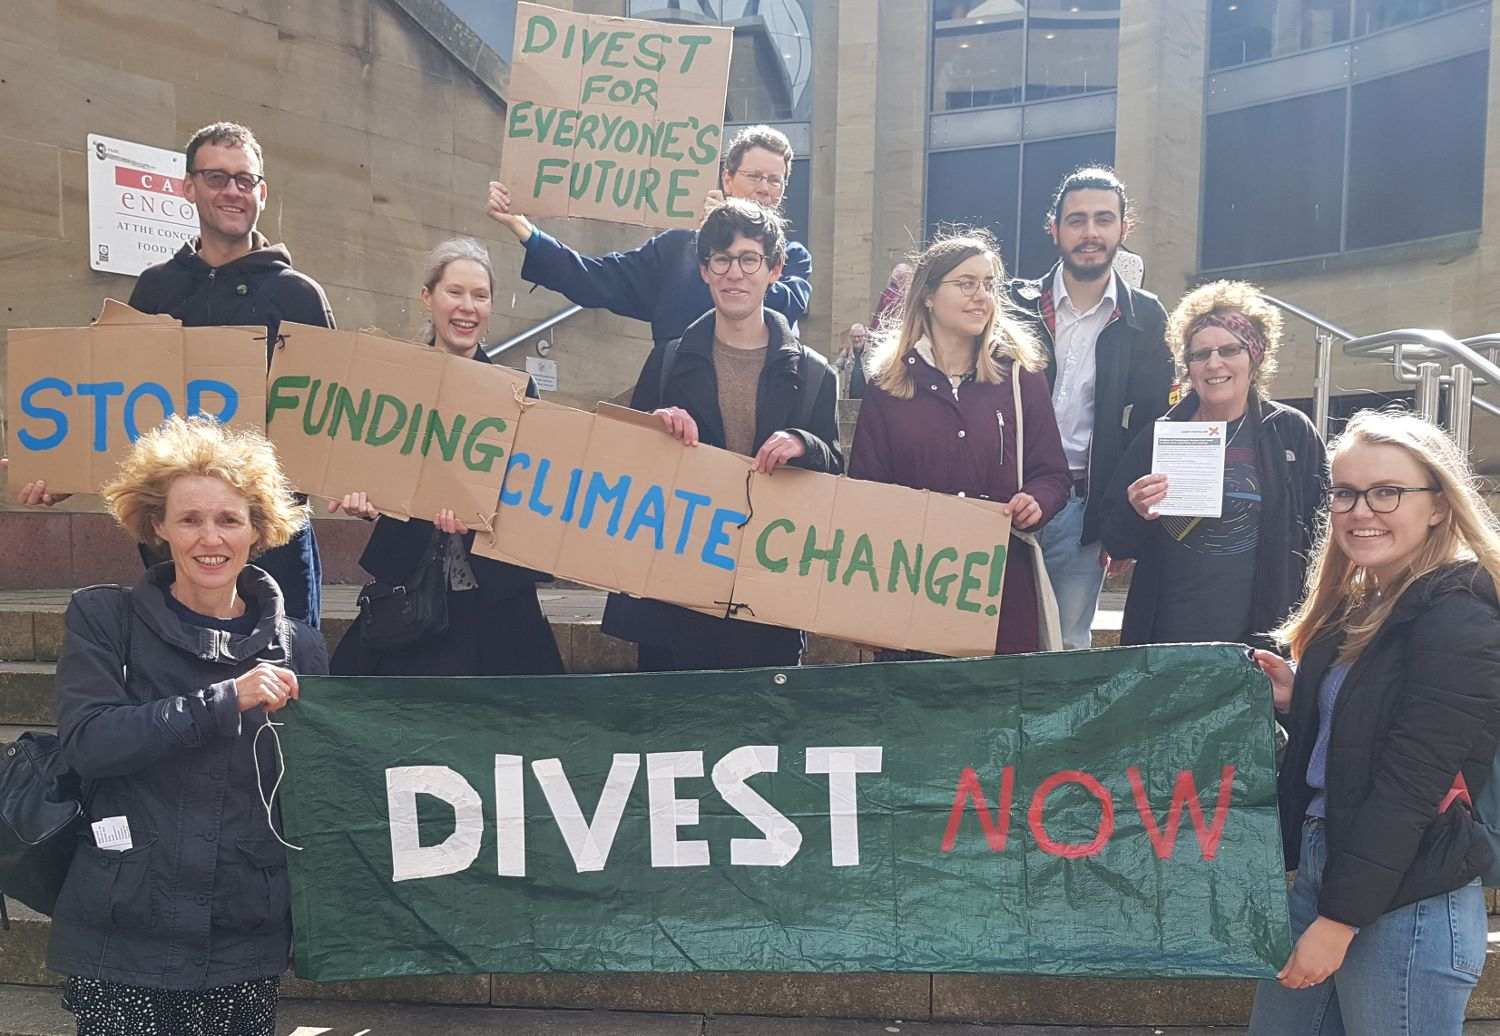 Activists hold a banner saying 'Divest Now'.